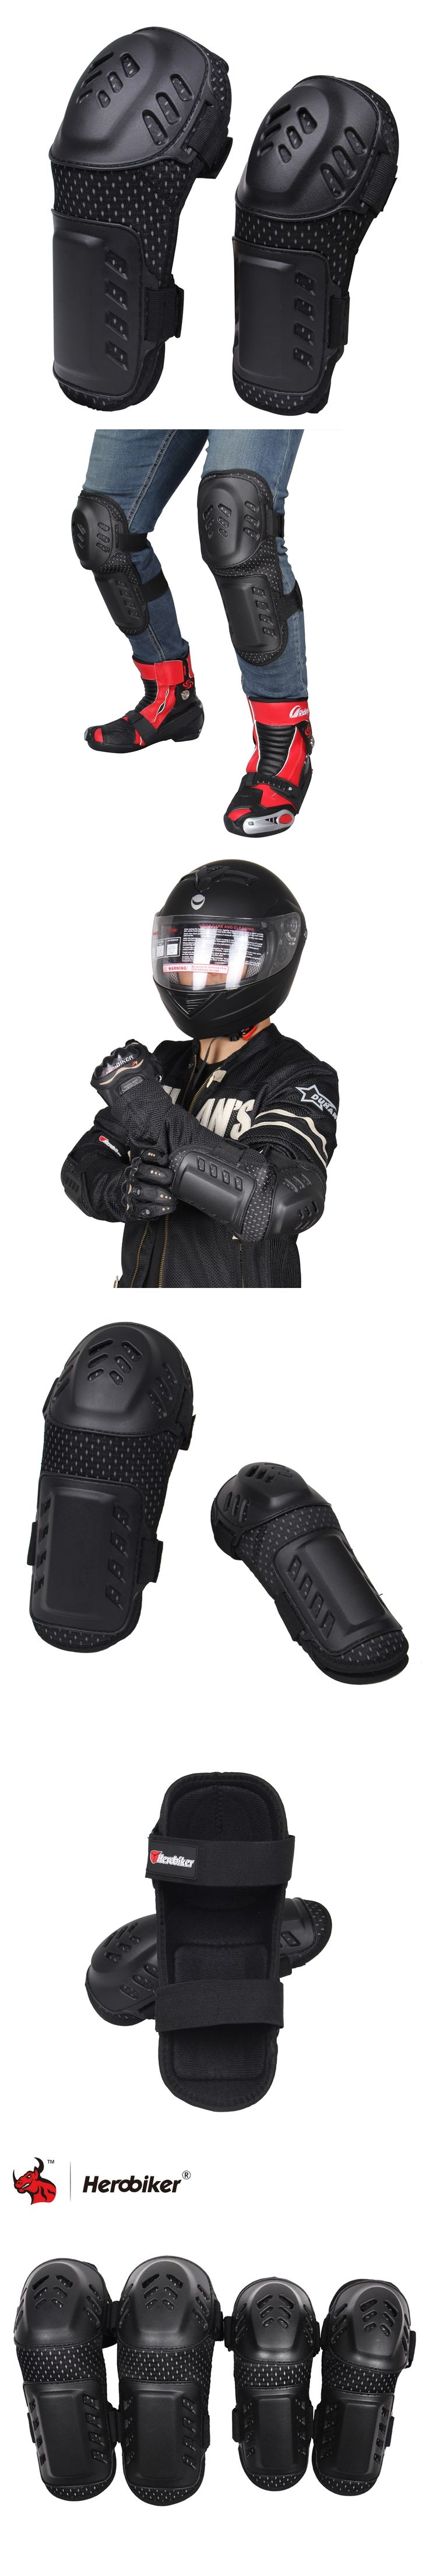 HEROBIKER Motorcycle Motocross Off-Road Racing Knee + Elbow Pads  Set Safety Guards Protective Gear Extreme Sport Protectors